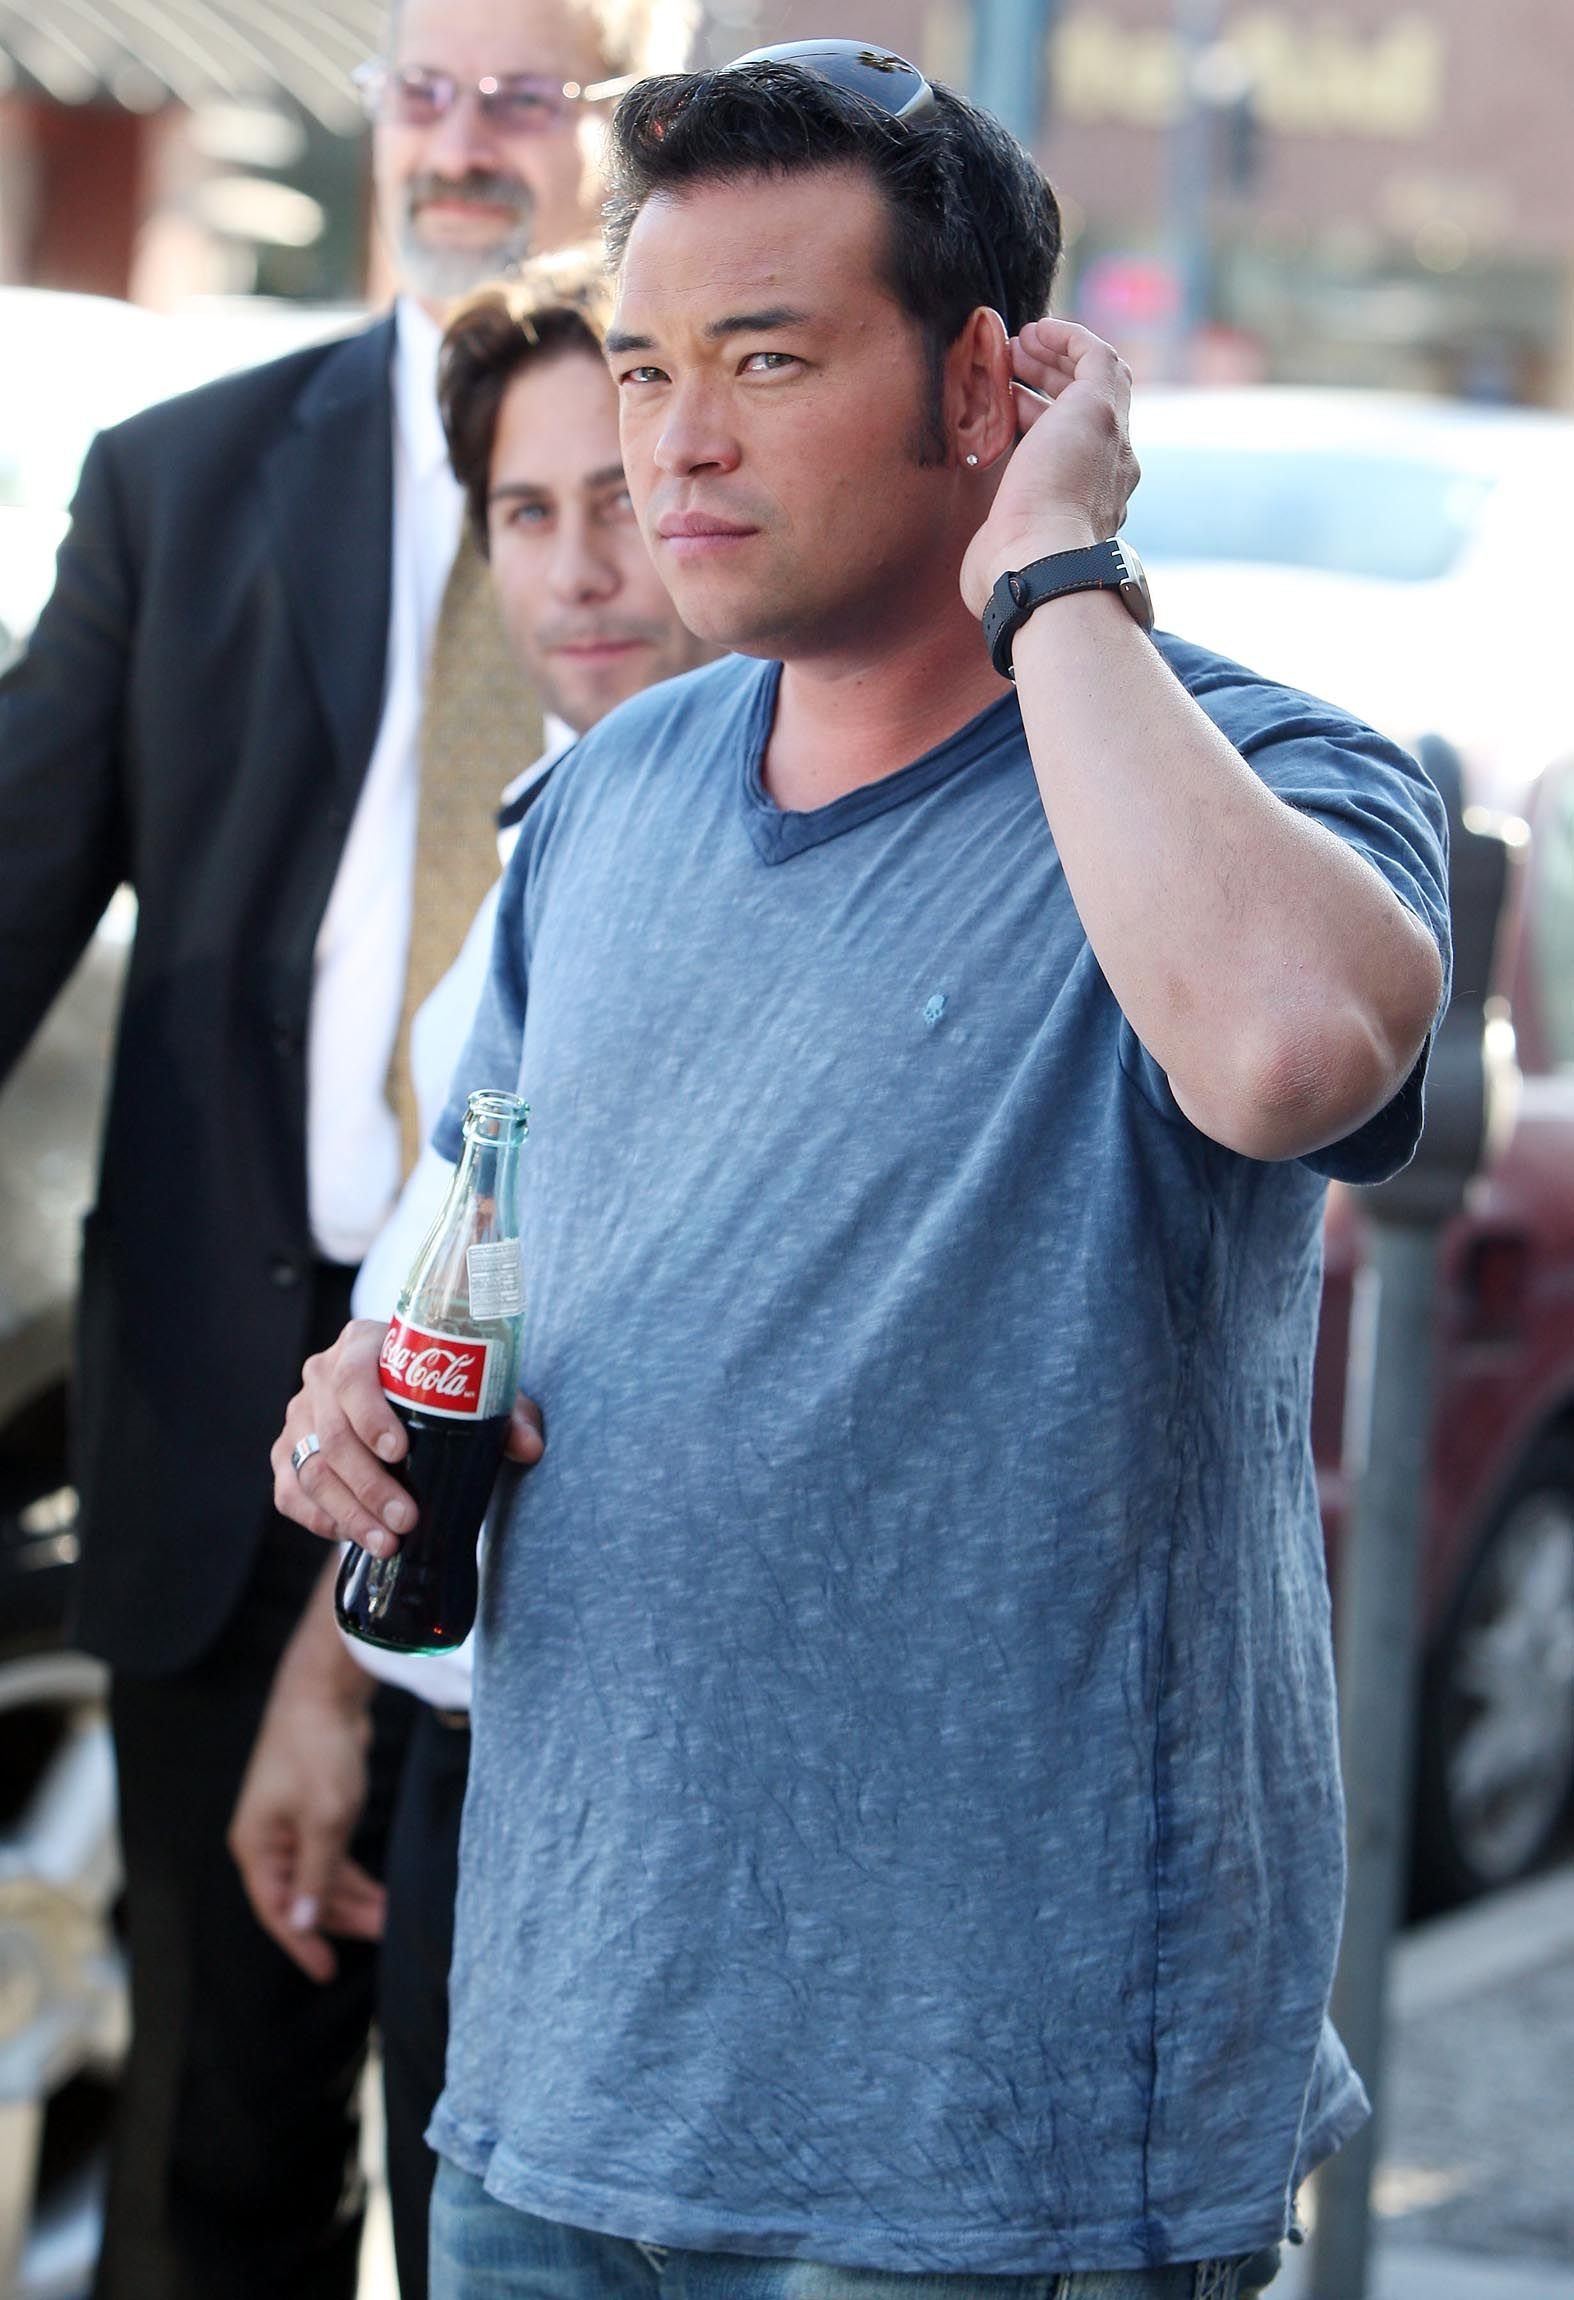 A photo showing Jon Gosselin sporting a plain shirt with denim pant and holding a bottle of coca-cola